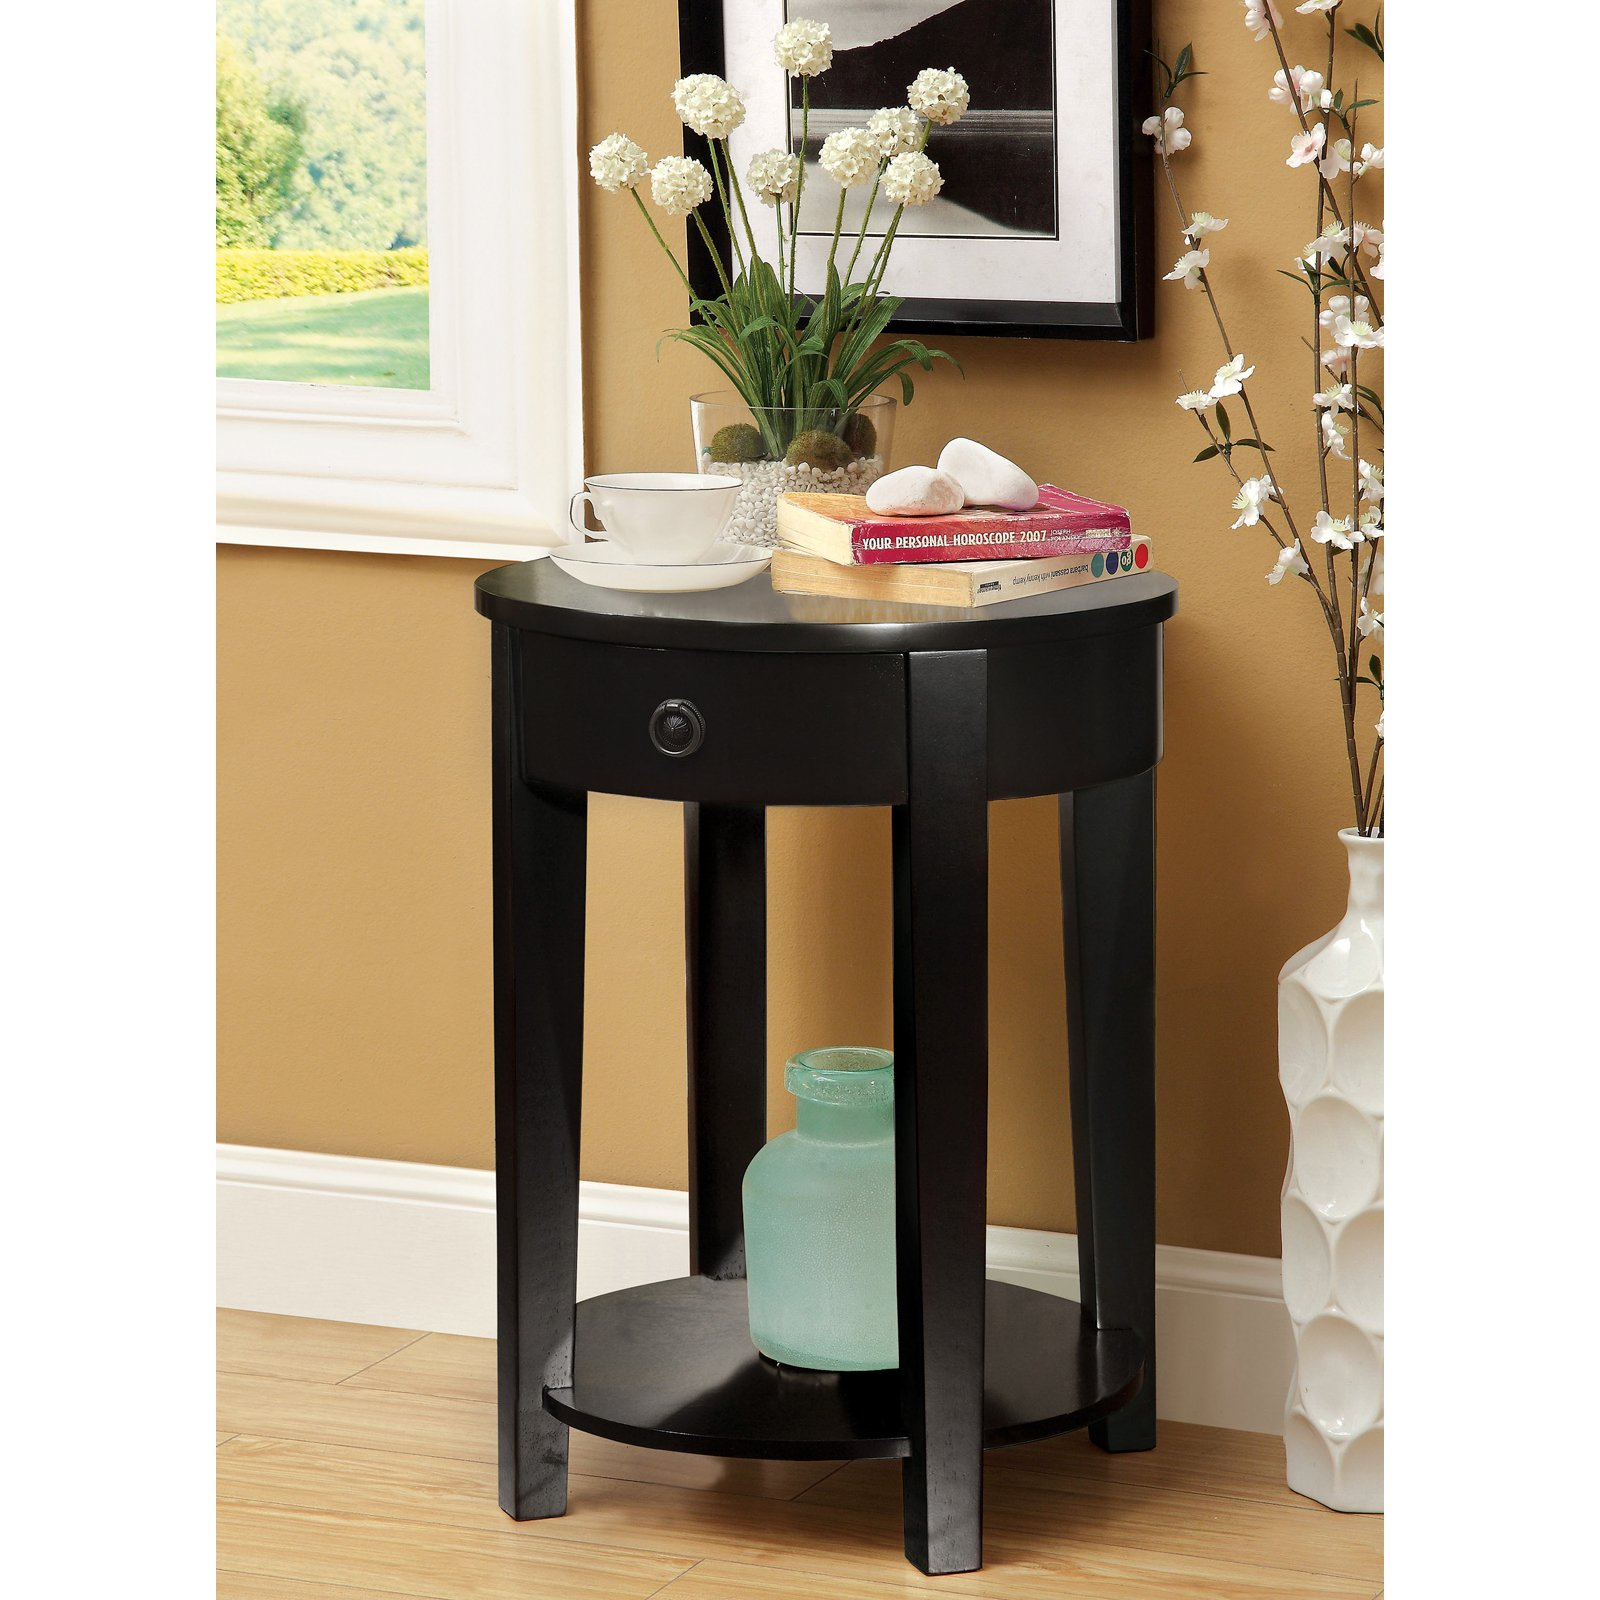 furniture america round side accent table with storage drawer fall quilted runner patterns dresser handles winsome wood counter height dining room sets rod iron patio cement thin